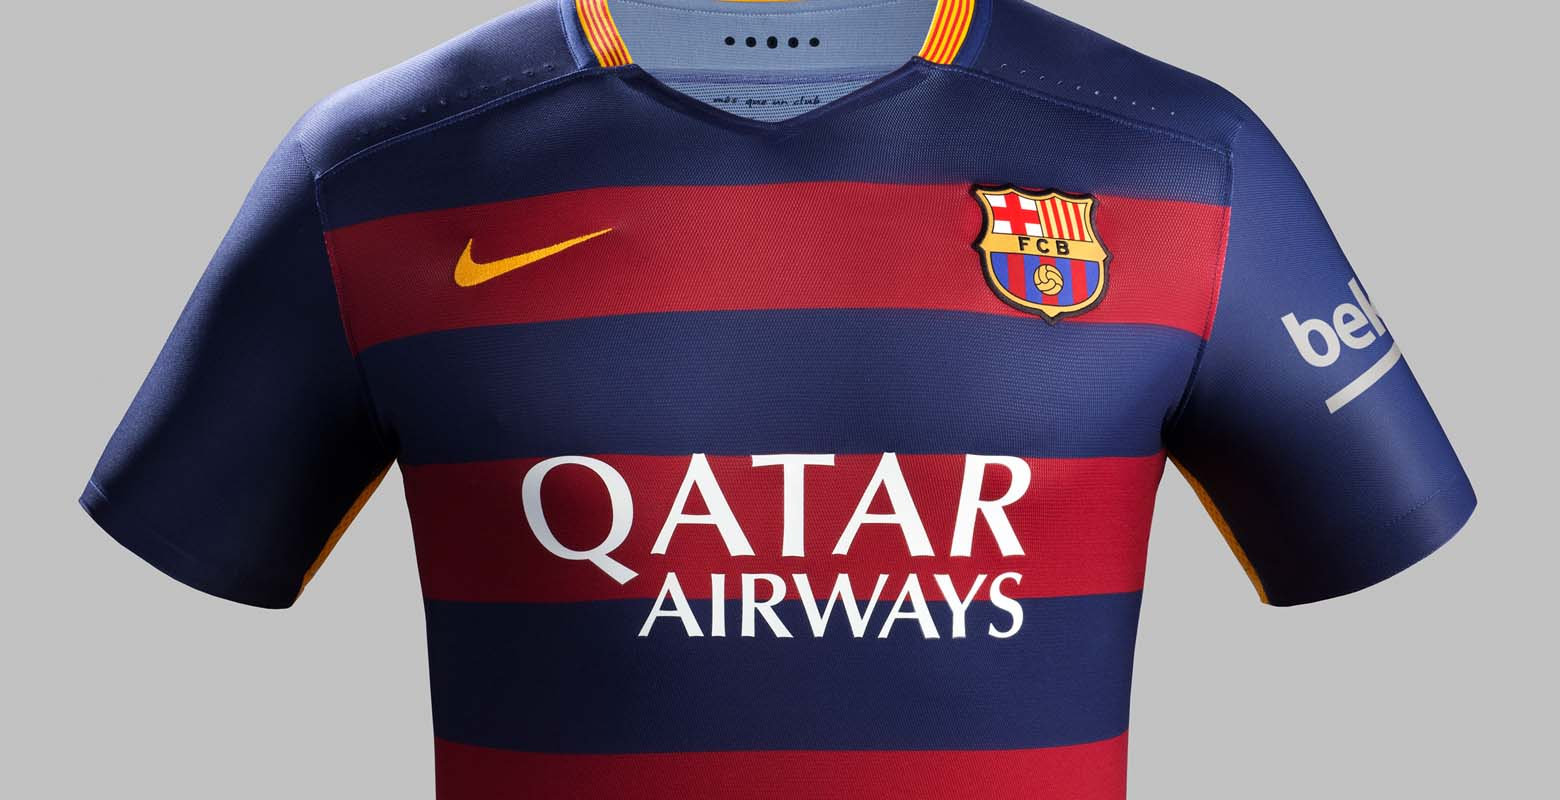 FC Barcelona to Decide about Record-breaking Qatar Airways